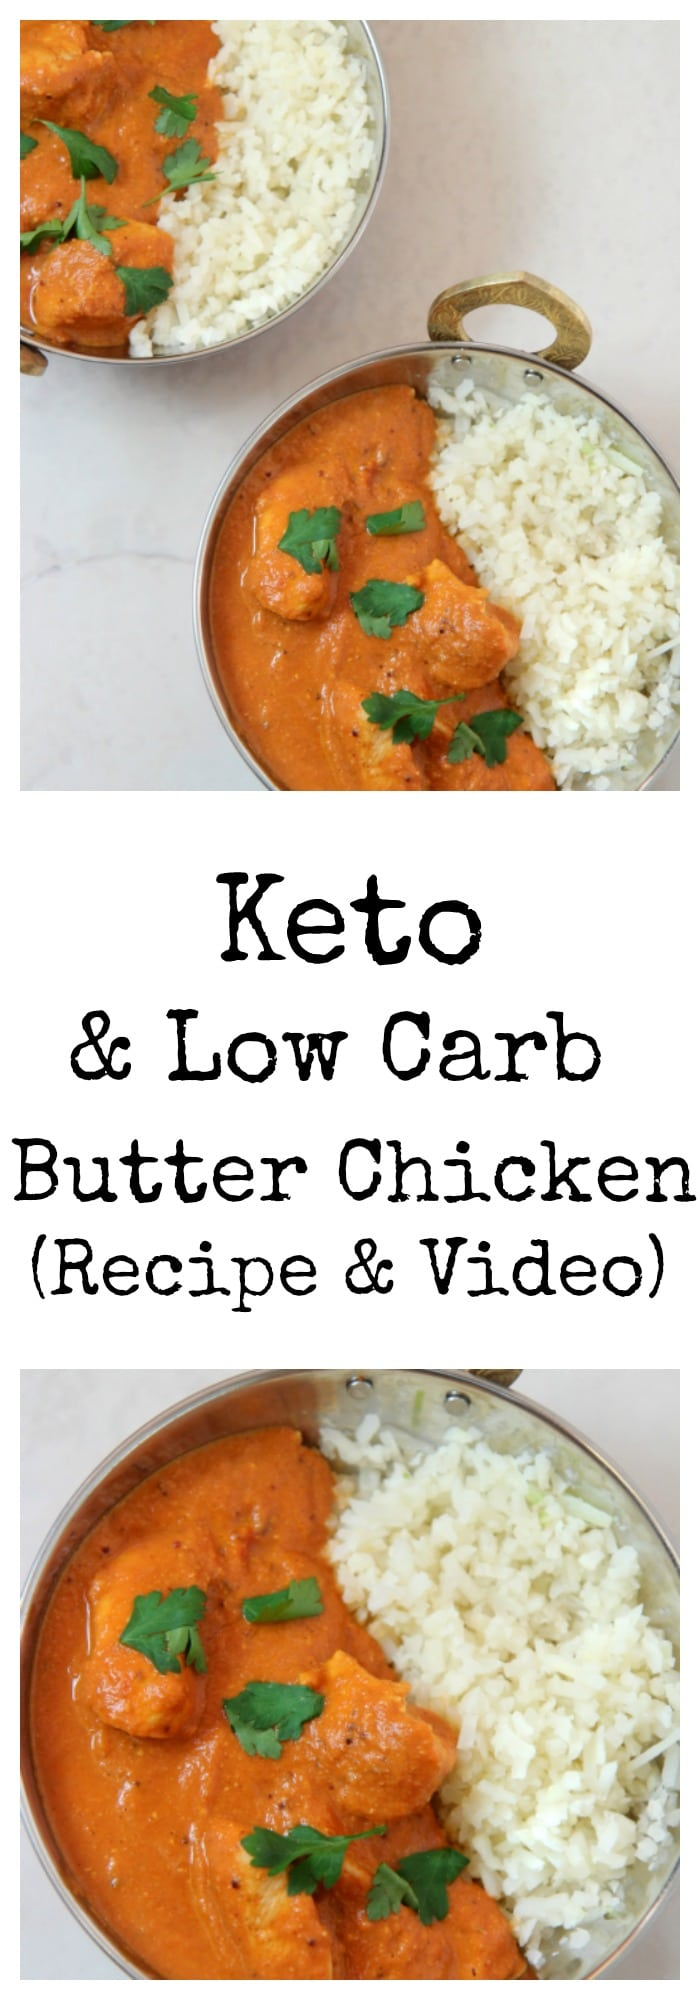 Keto and Low Carb Recipe for Butter Chicken | Recipe and Video from Cooked by Julie